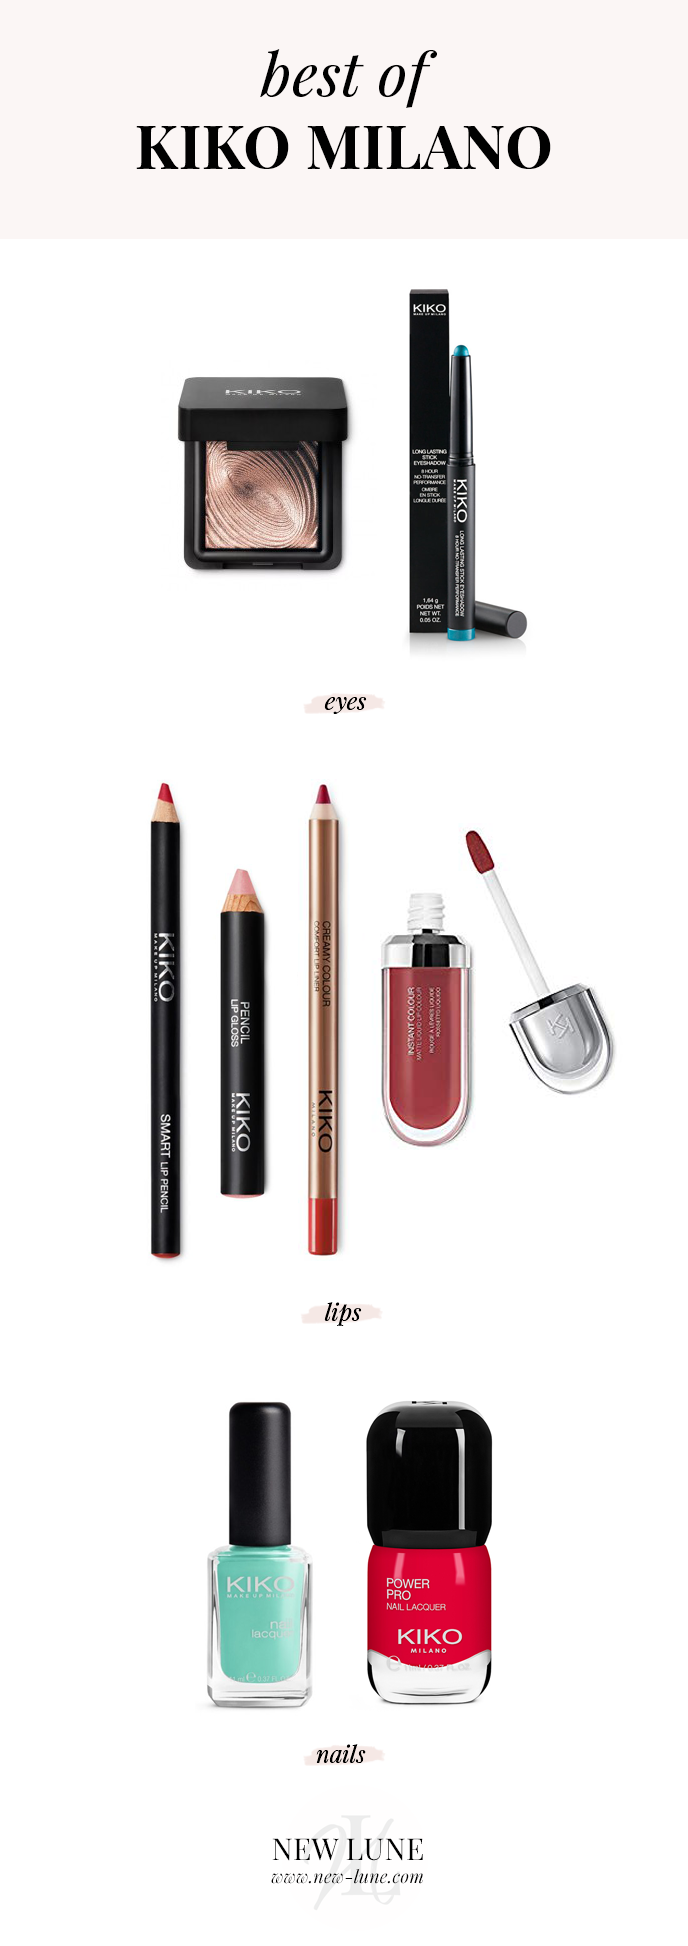 best of kiko milano - new lune - lip pencil gloss - nail lacquer - lip liner - water eyeshadow - long lasting stick eyeshadow